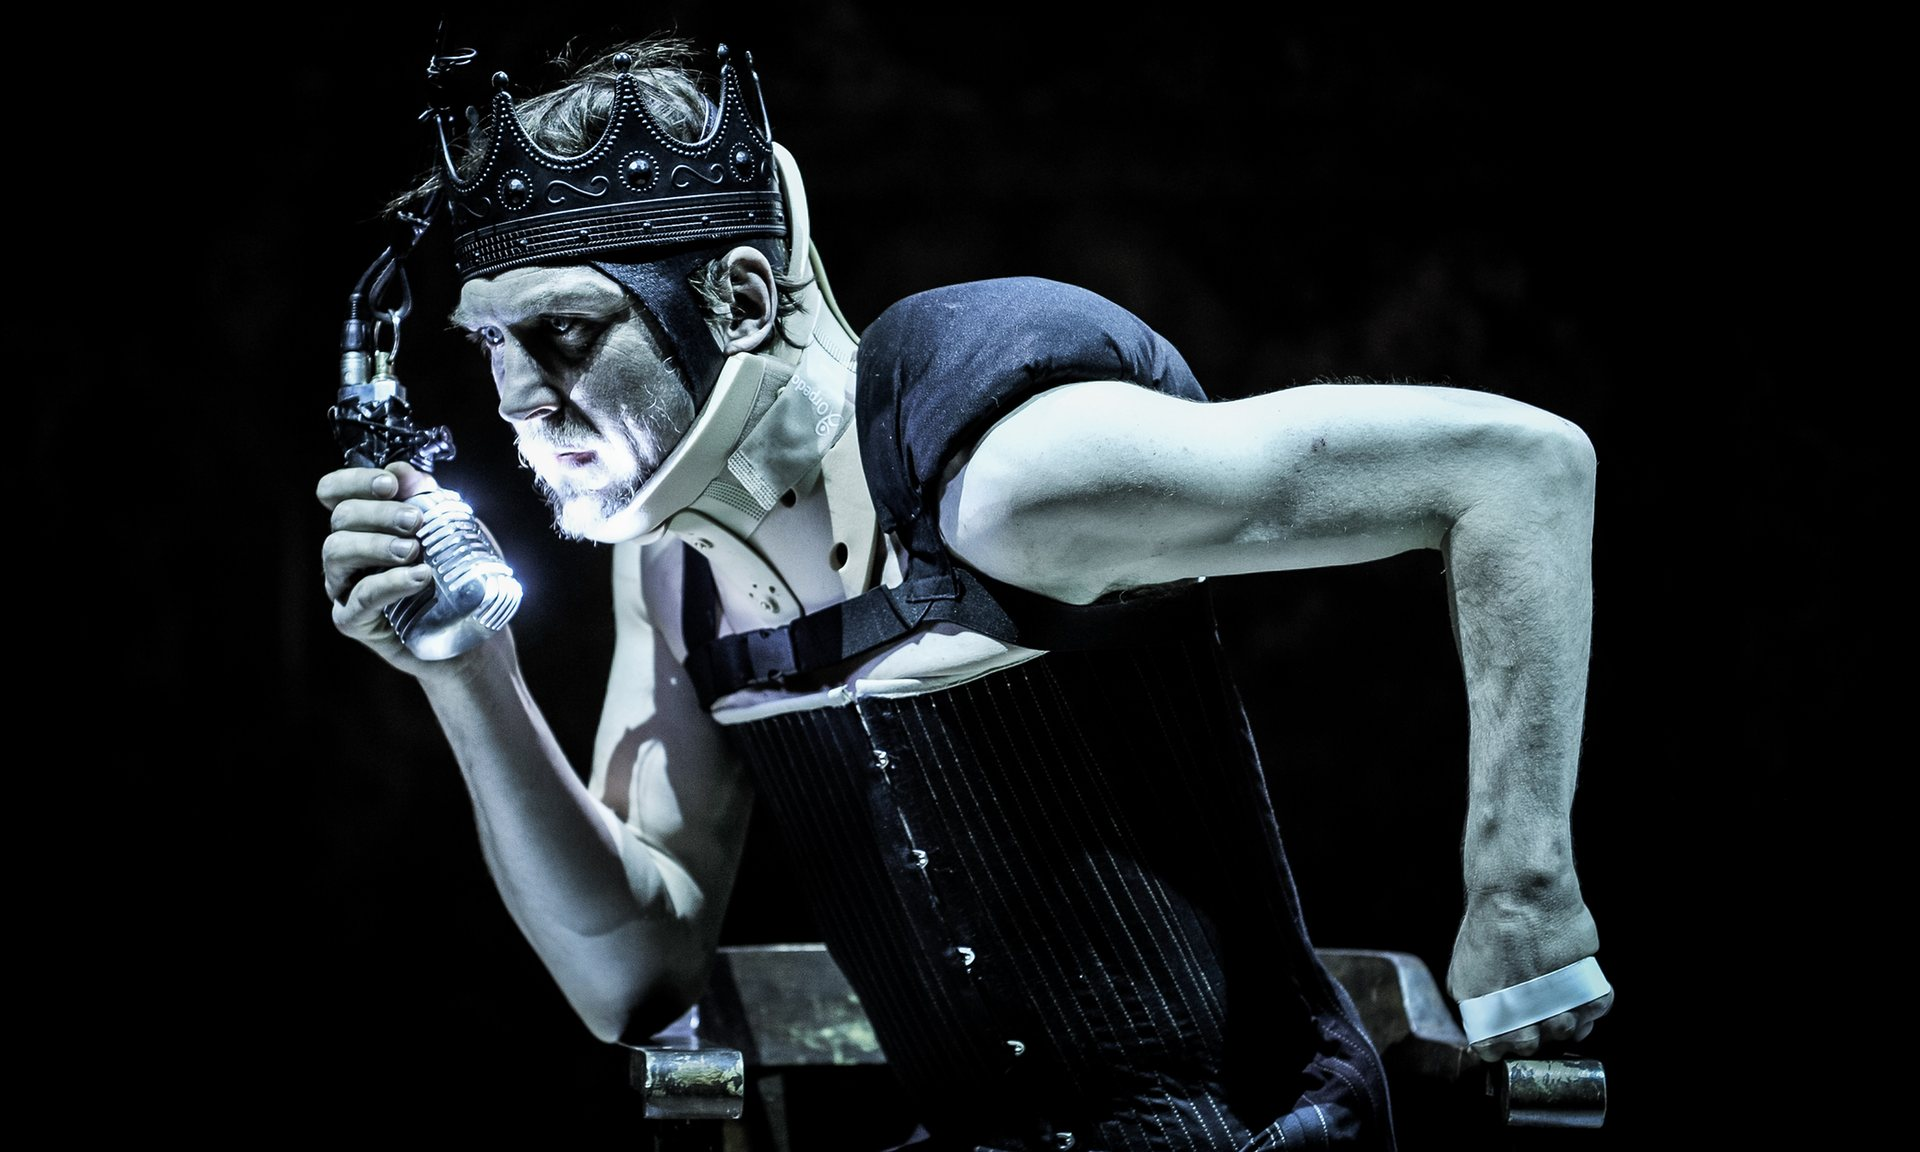 Lars Eidinger as Richard III. Directed by Thomas Ostermeier. Photo credit: Arno